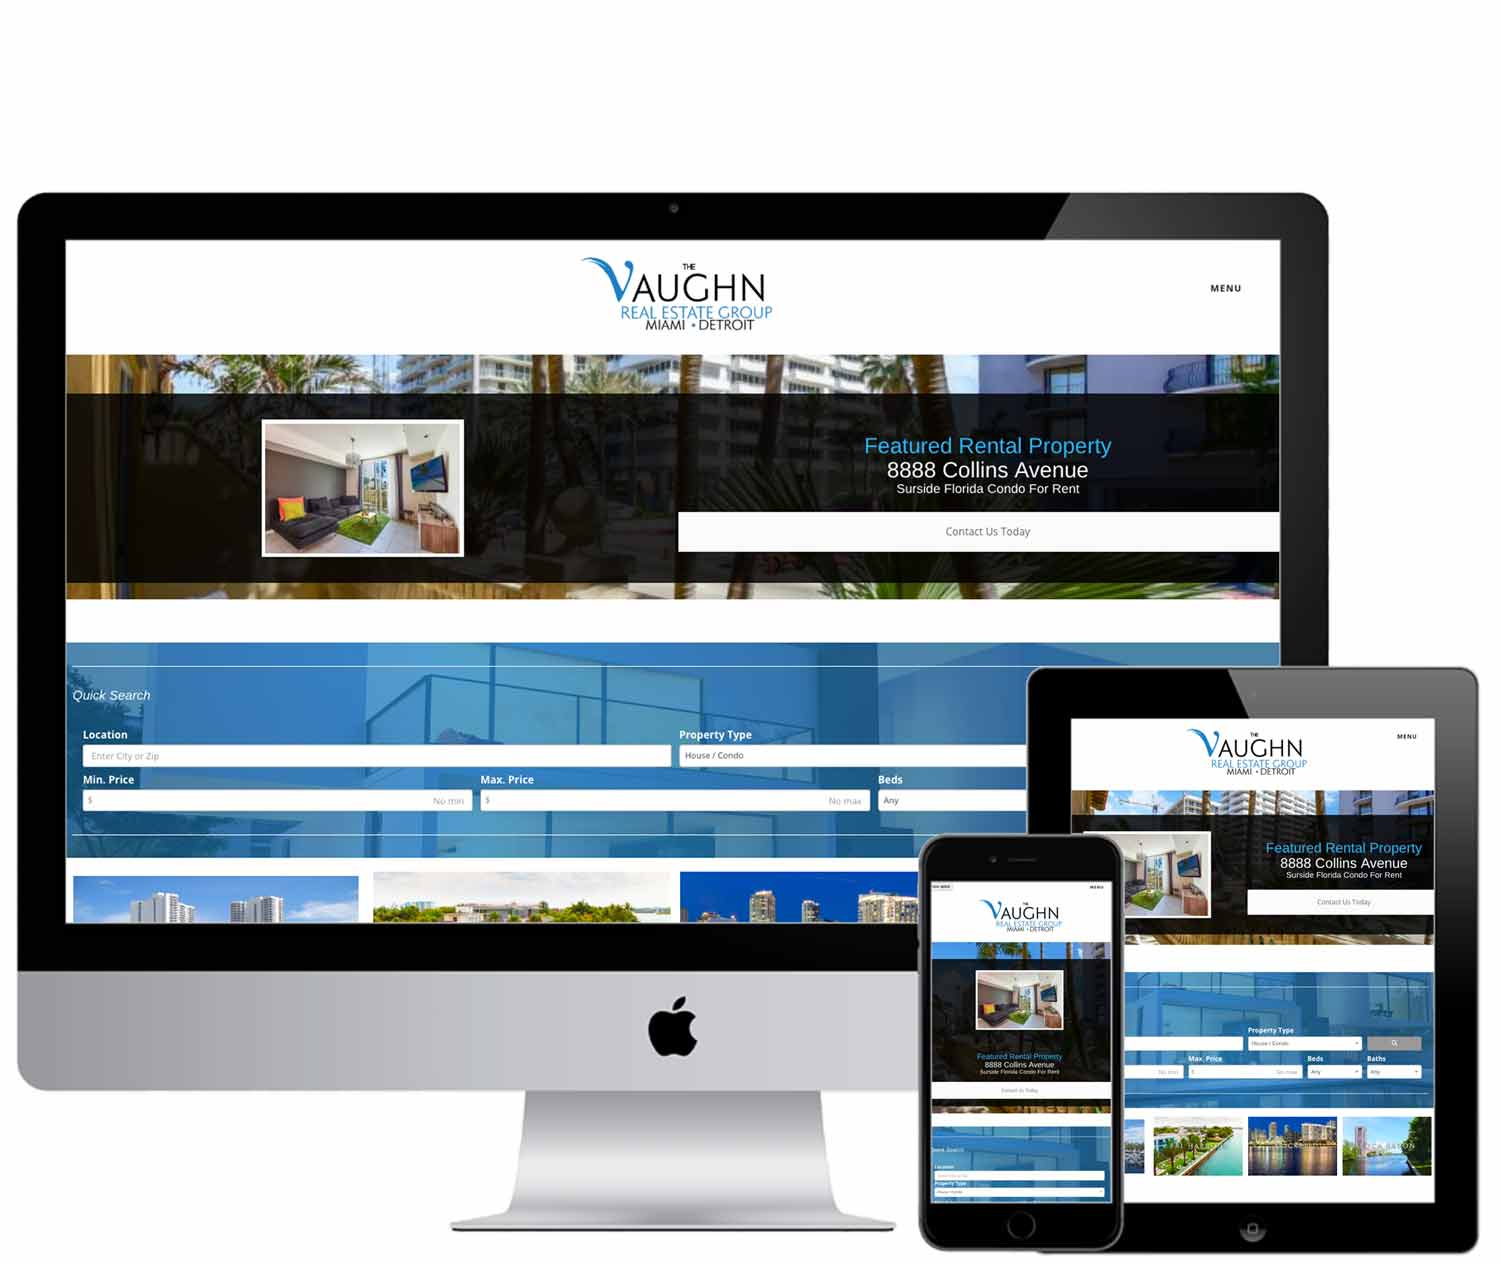 The Vaughn IDX Real Estate Website design